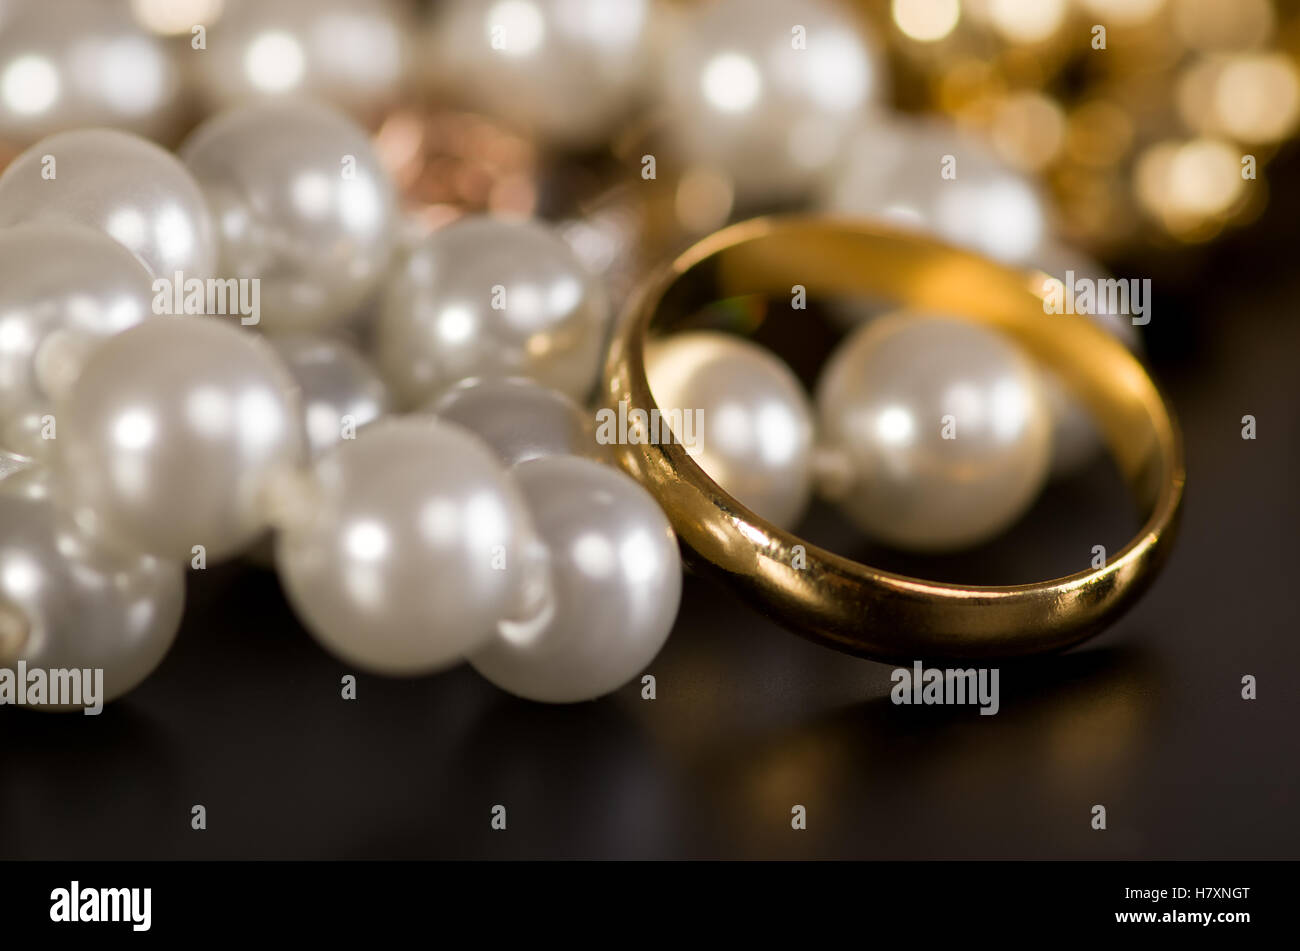 73b6578fc1fc9 Gold Jewelry Pearls Stock Photos & Gold Jewelry Pearls Stock Images ...